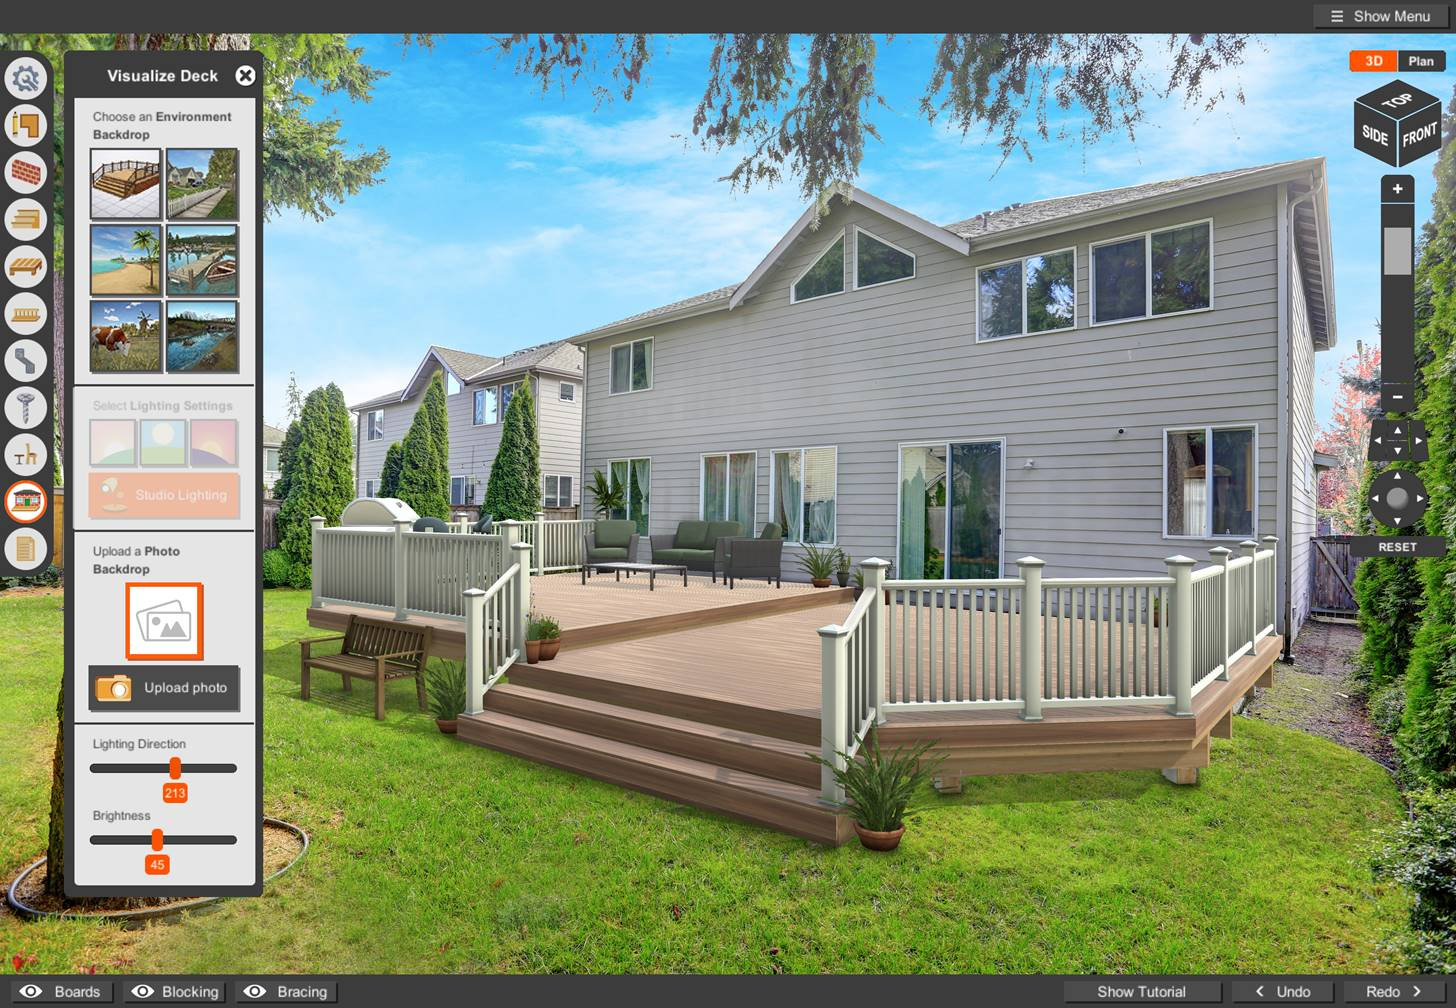 Simpson Strong Tie Launches Enhanced Online Deck Planner Software Center For Deck Builders Homeowners Diyers Sbc Magazine